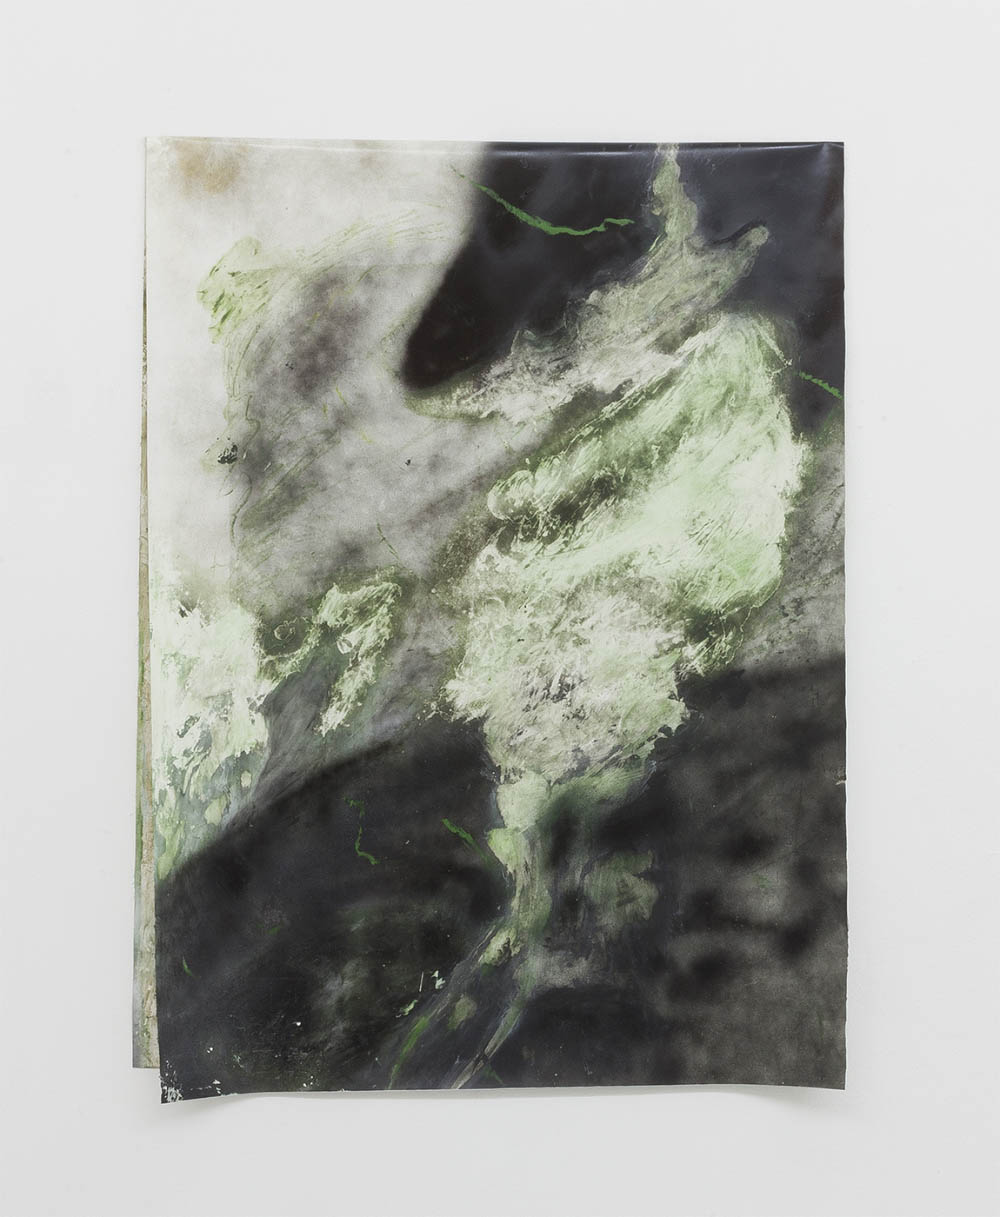 Untitled (Green Infernos series), 2017, oil, spray, beeswax and oil stick on PVC